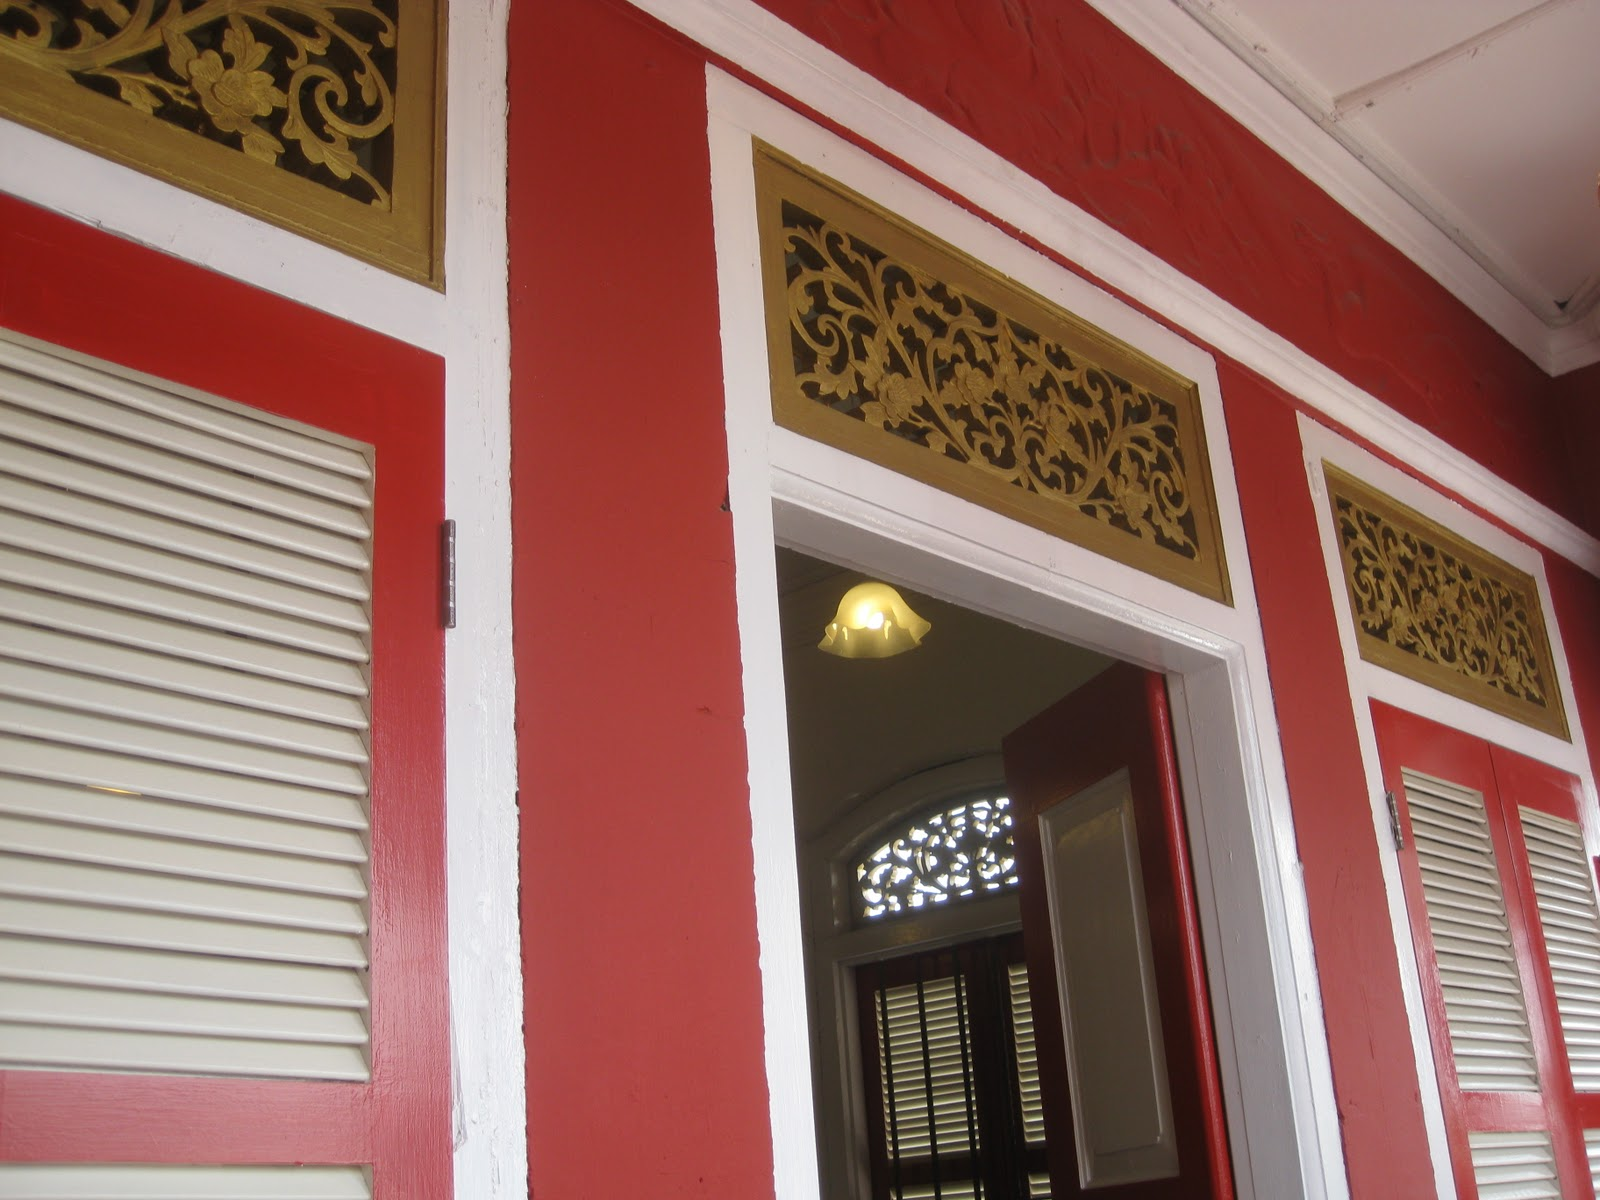 Peggy loh my johor stories september 2011 for Door ventilation design